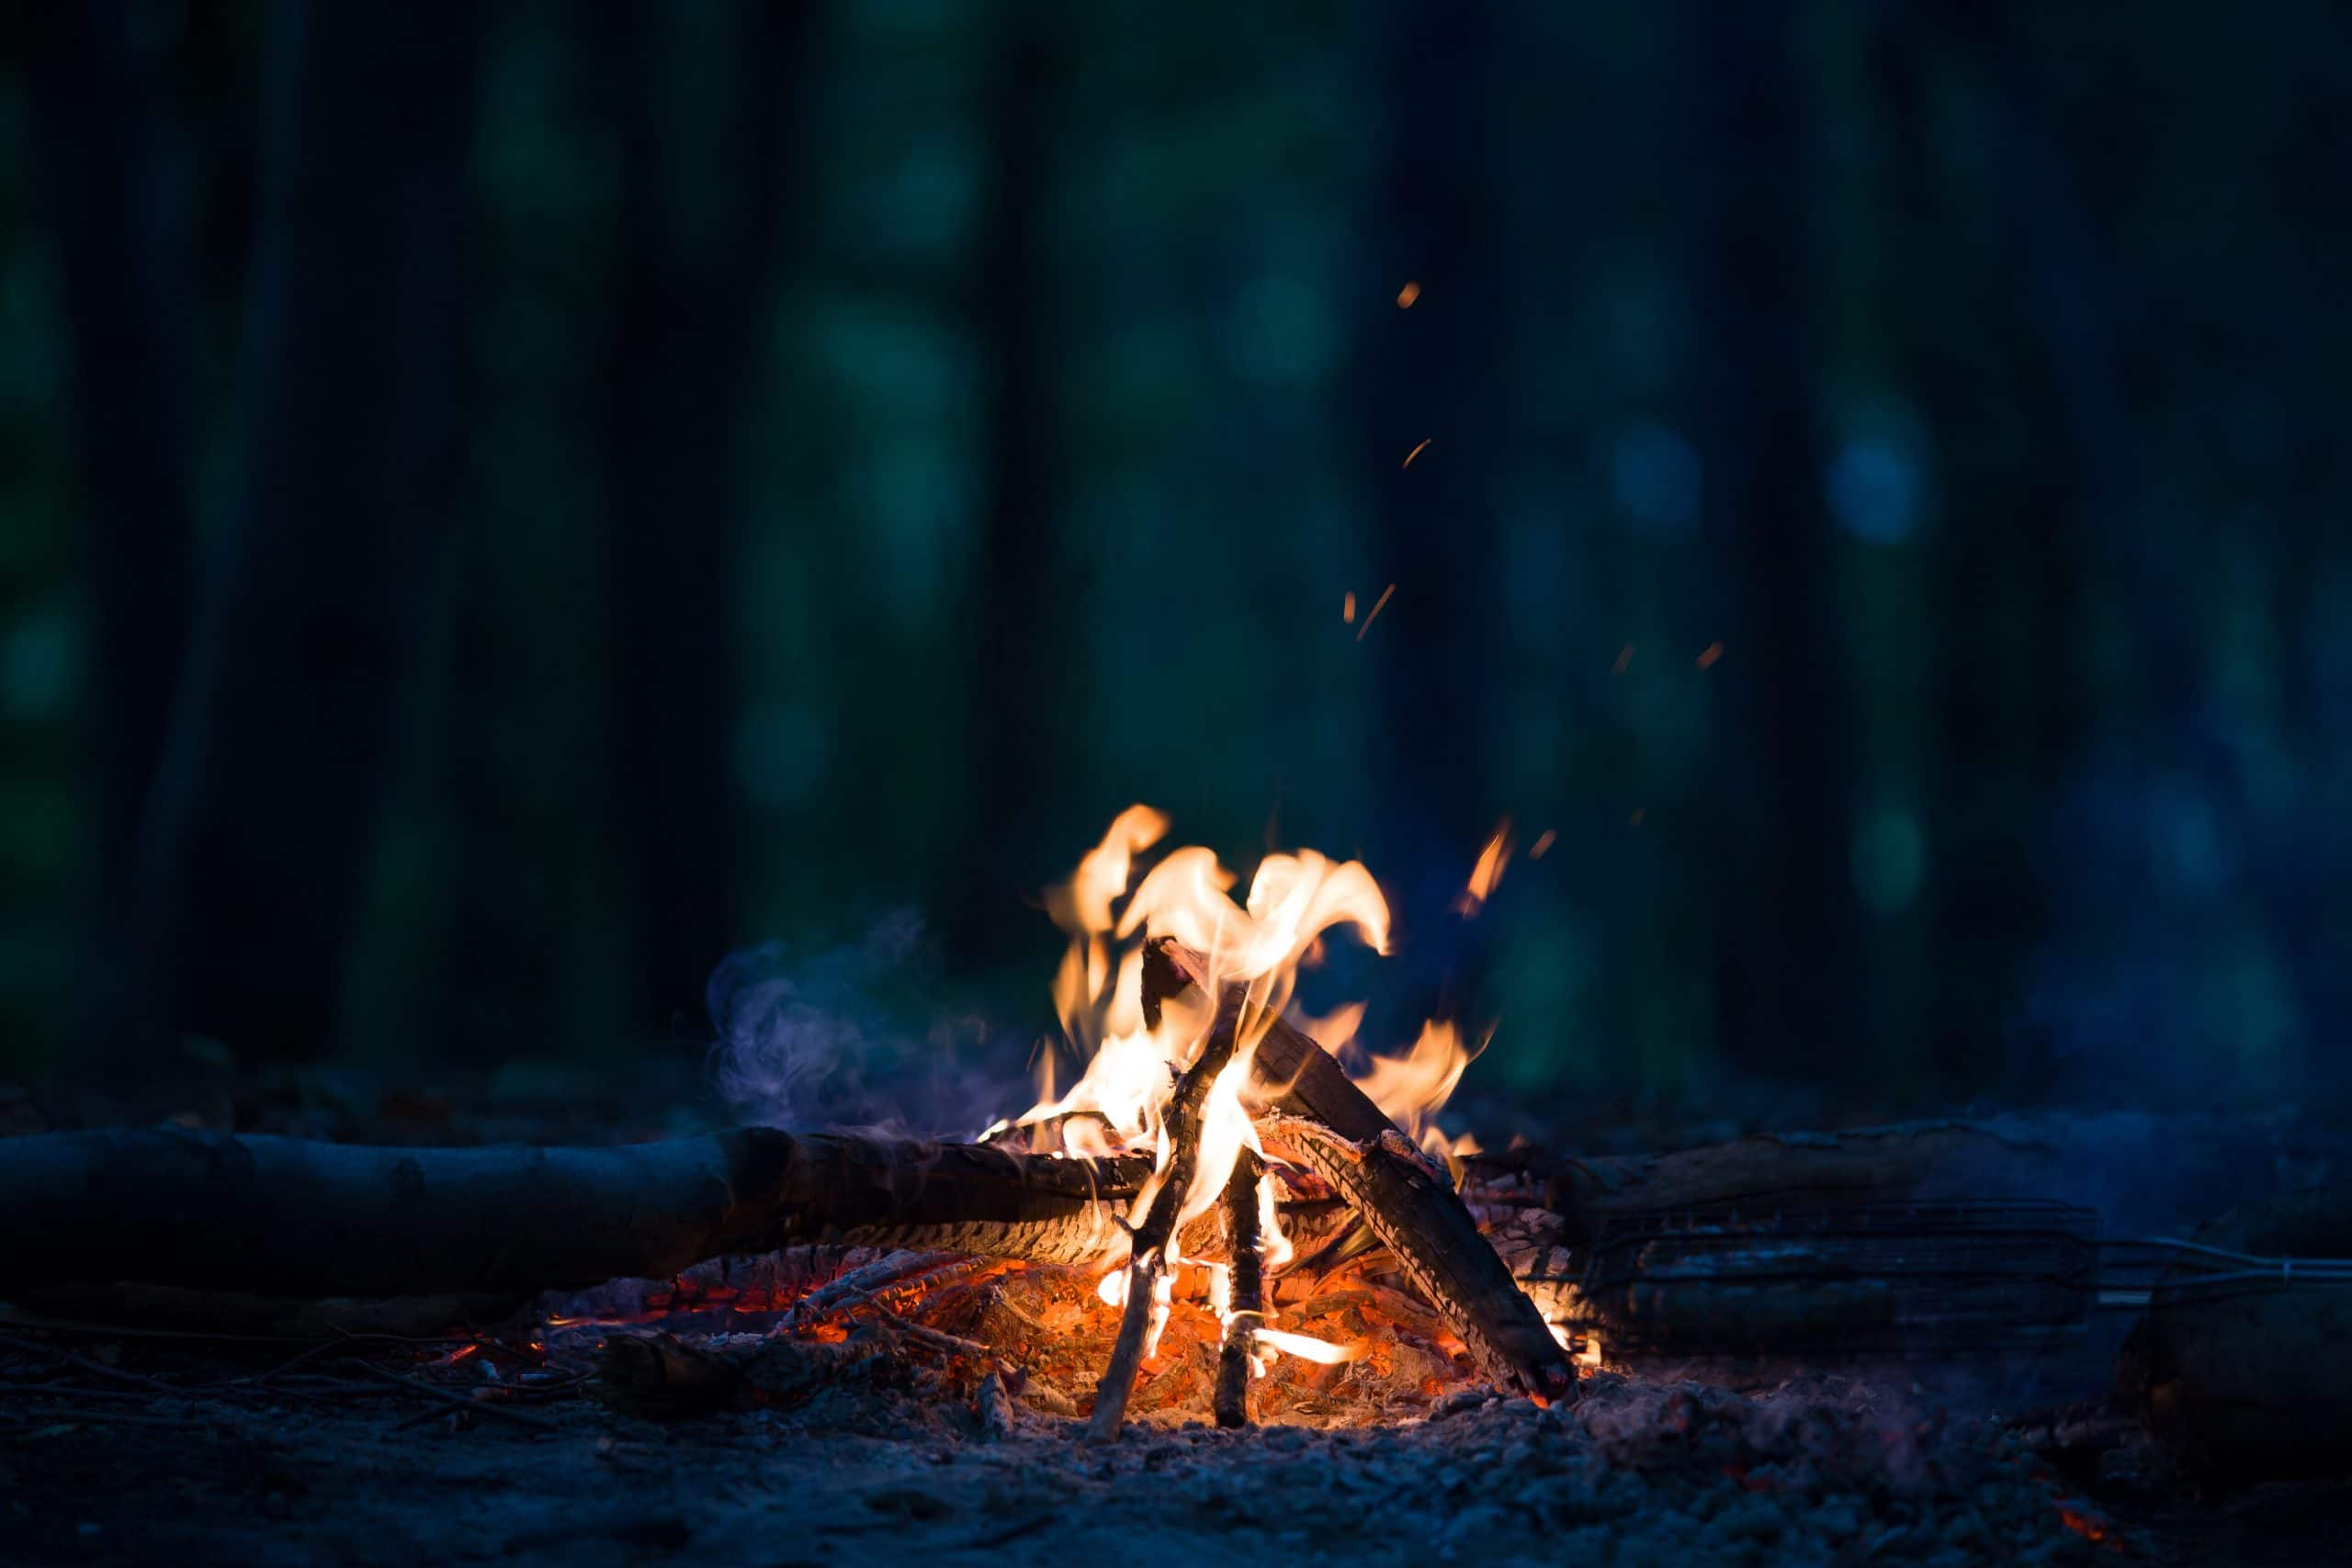 Night campfire at the night with blurred dark fores.